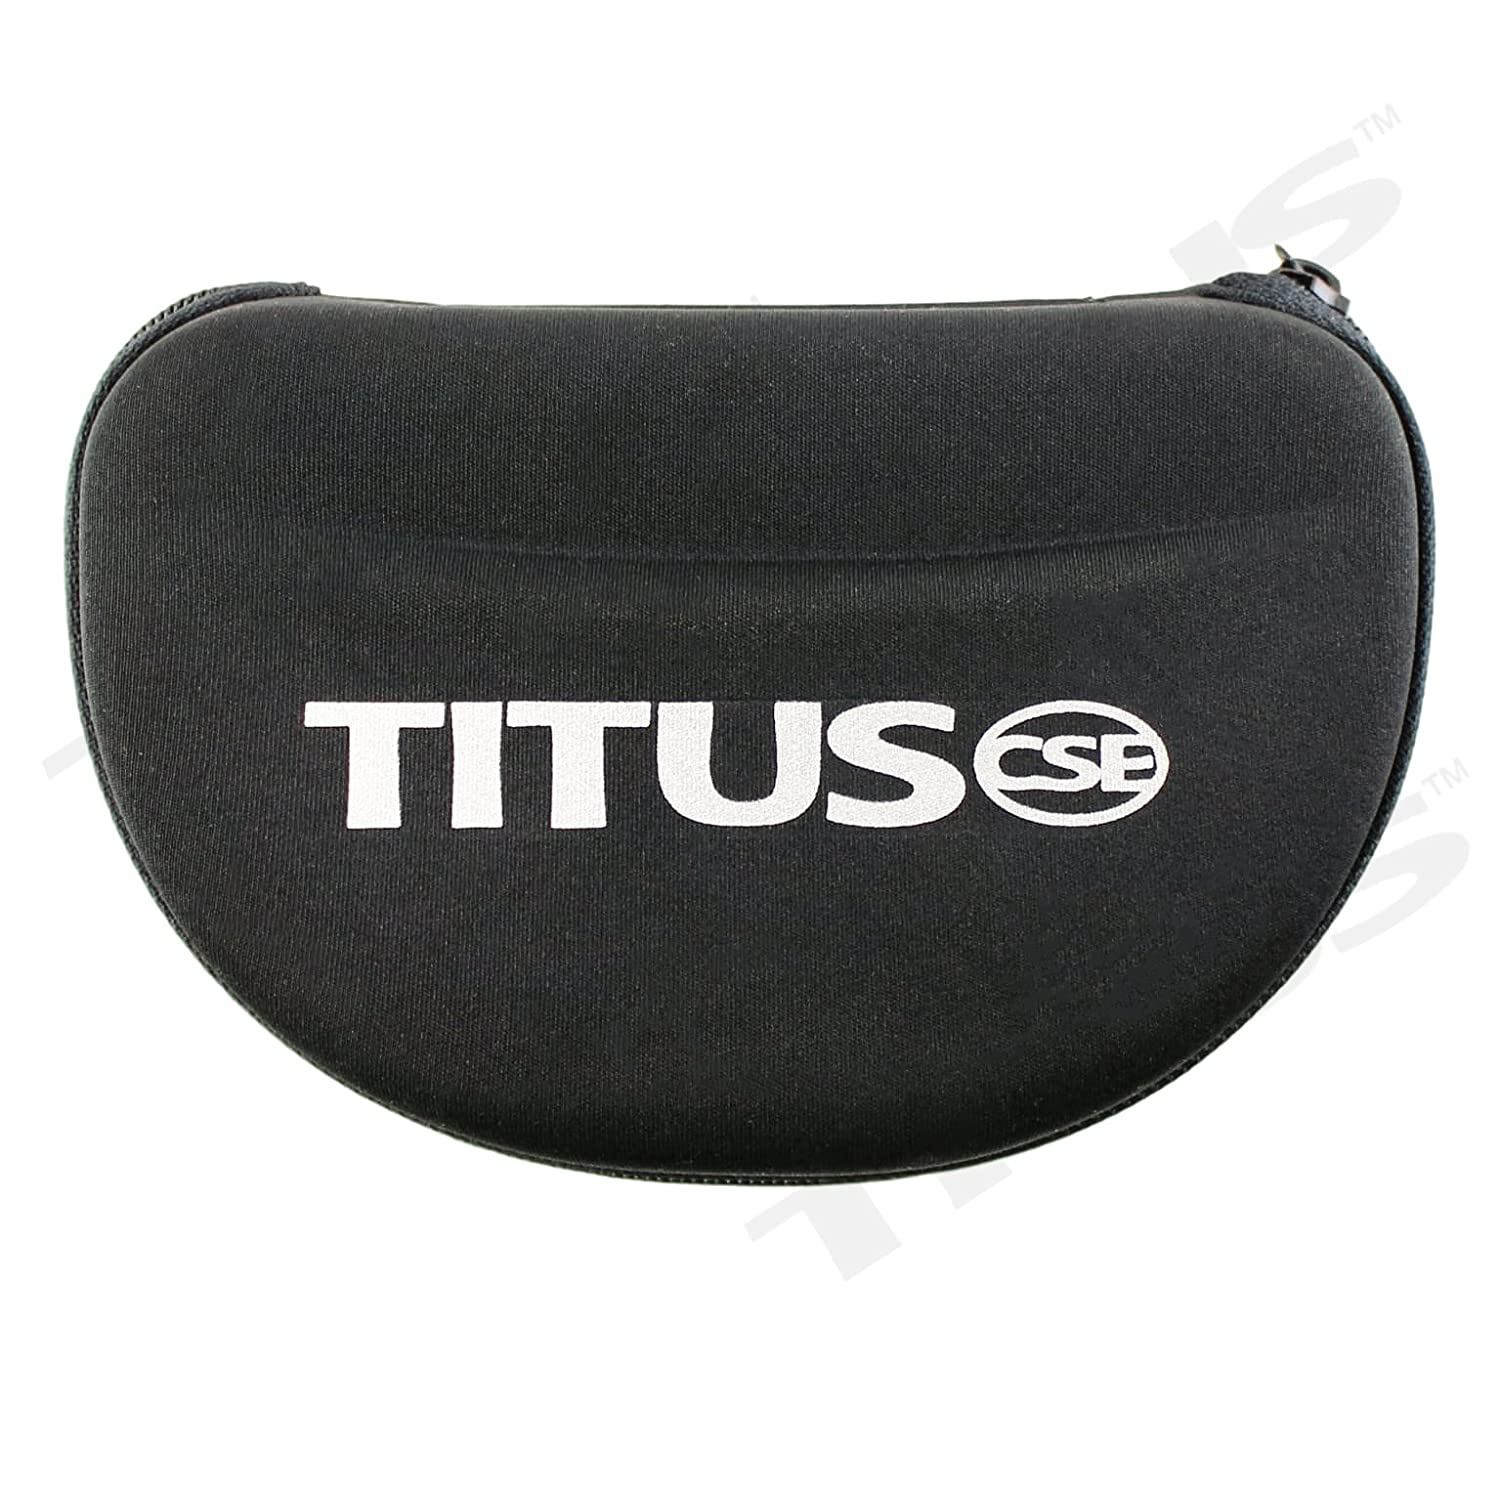 TITUS Welding Safety Goggles with Interchangeable Lenses Low: #5, #8, #11